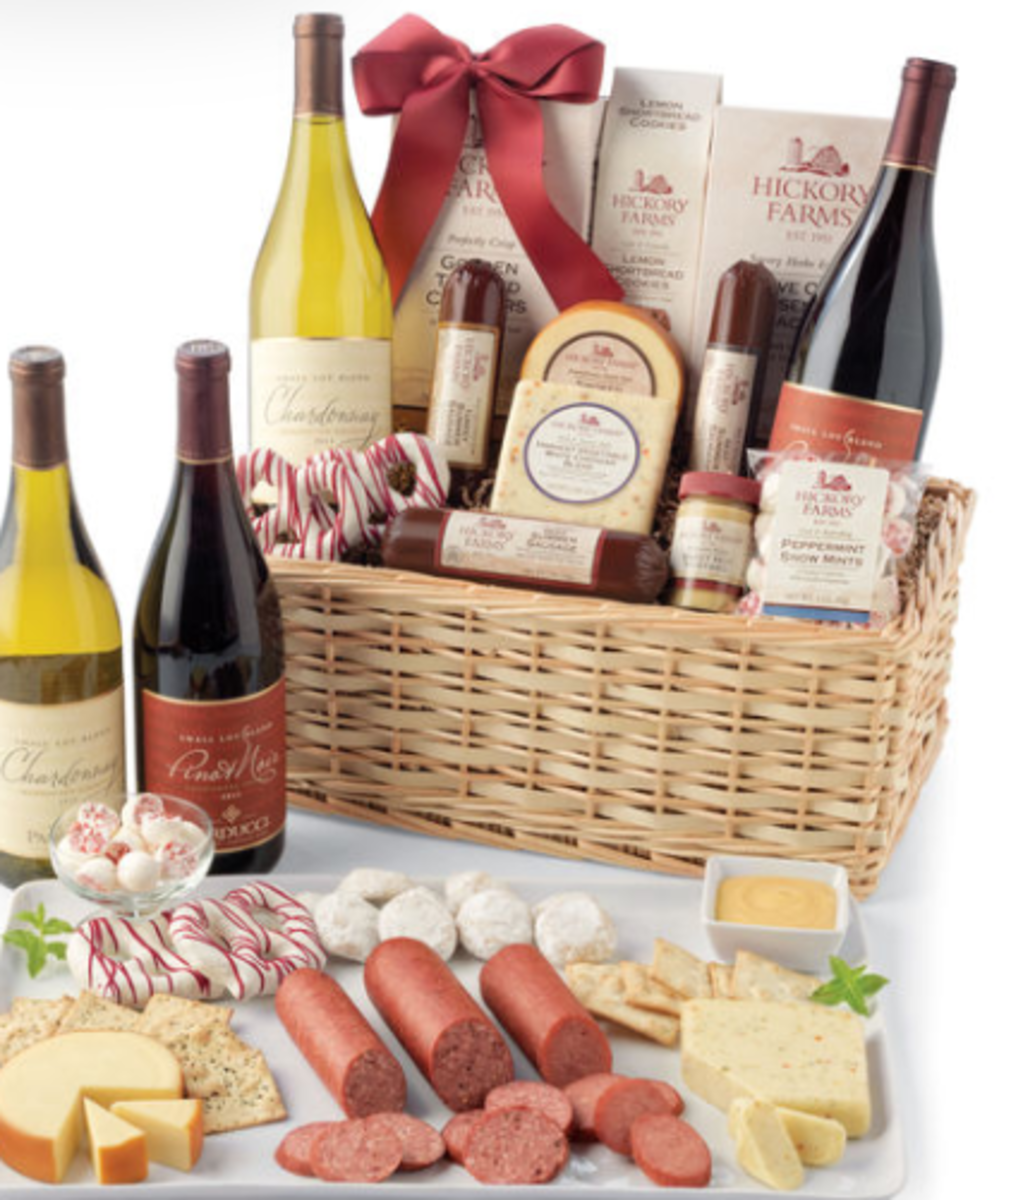 Hickory Farms Holiday Baskets